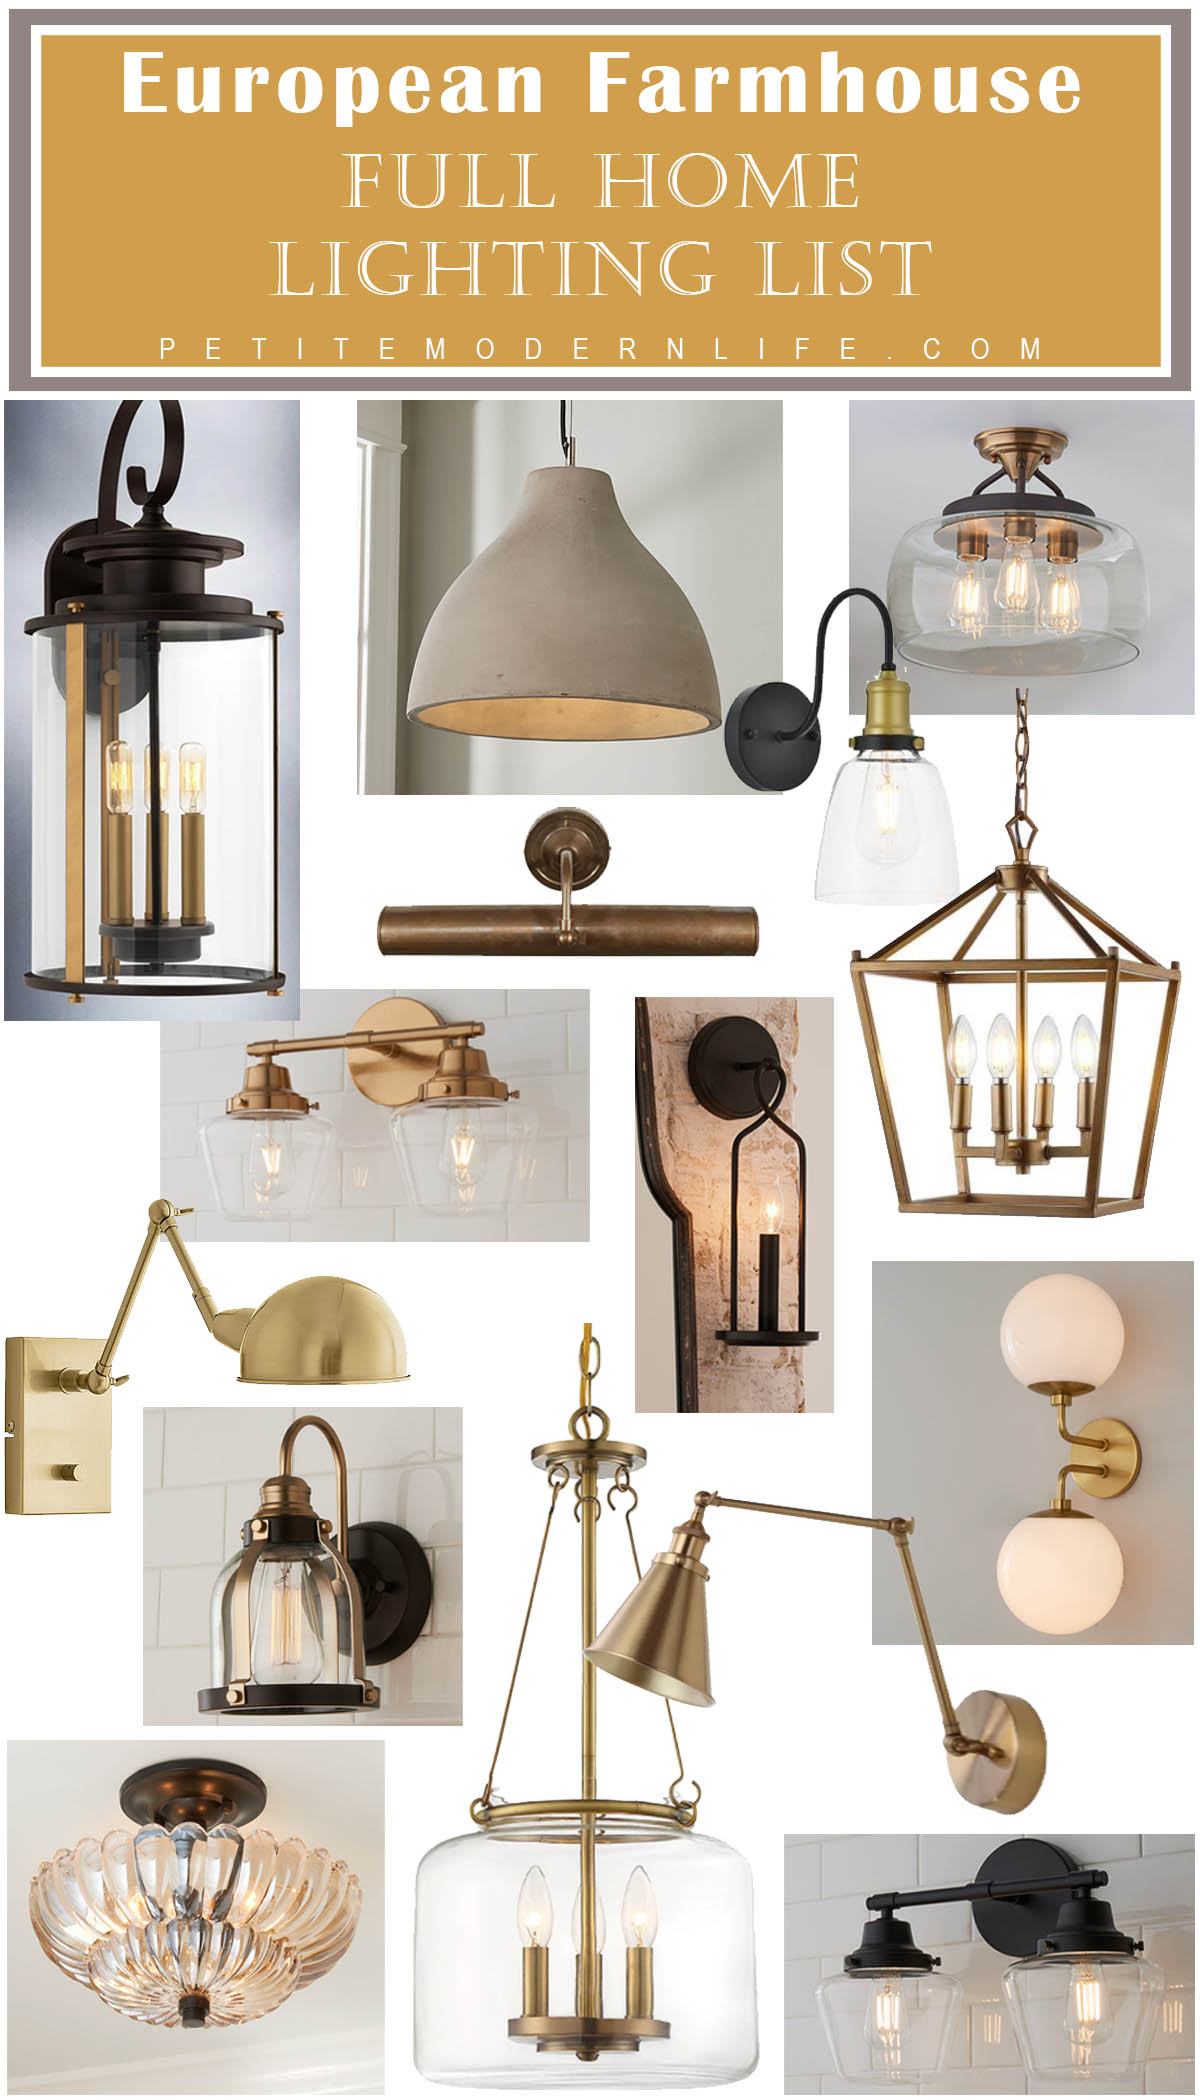 Our European Farmhouse Lighting List